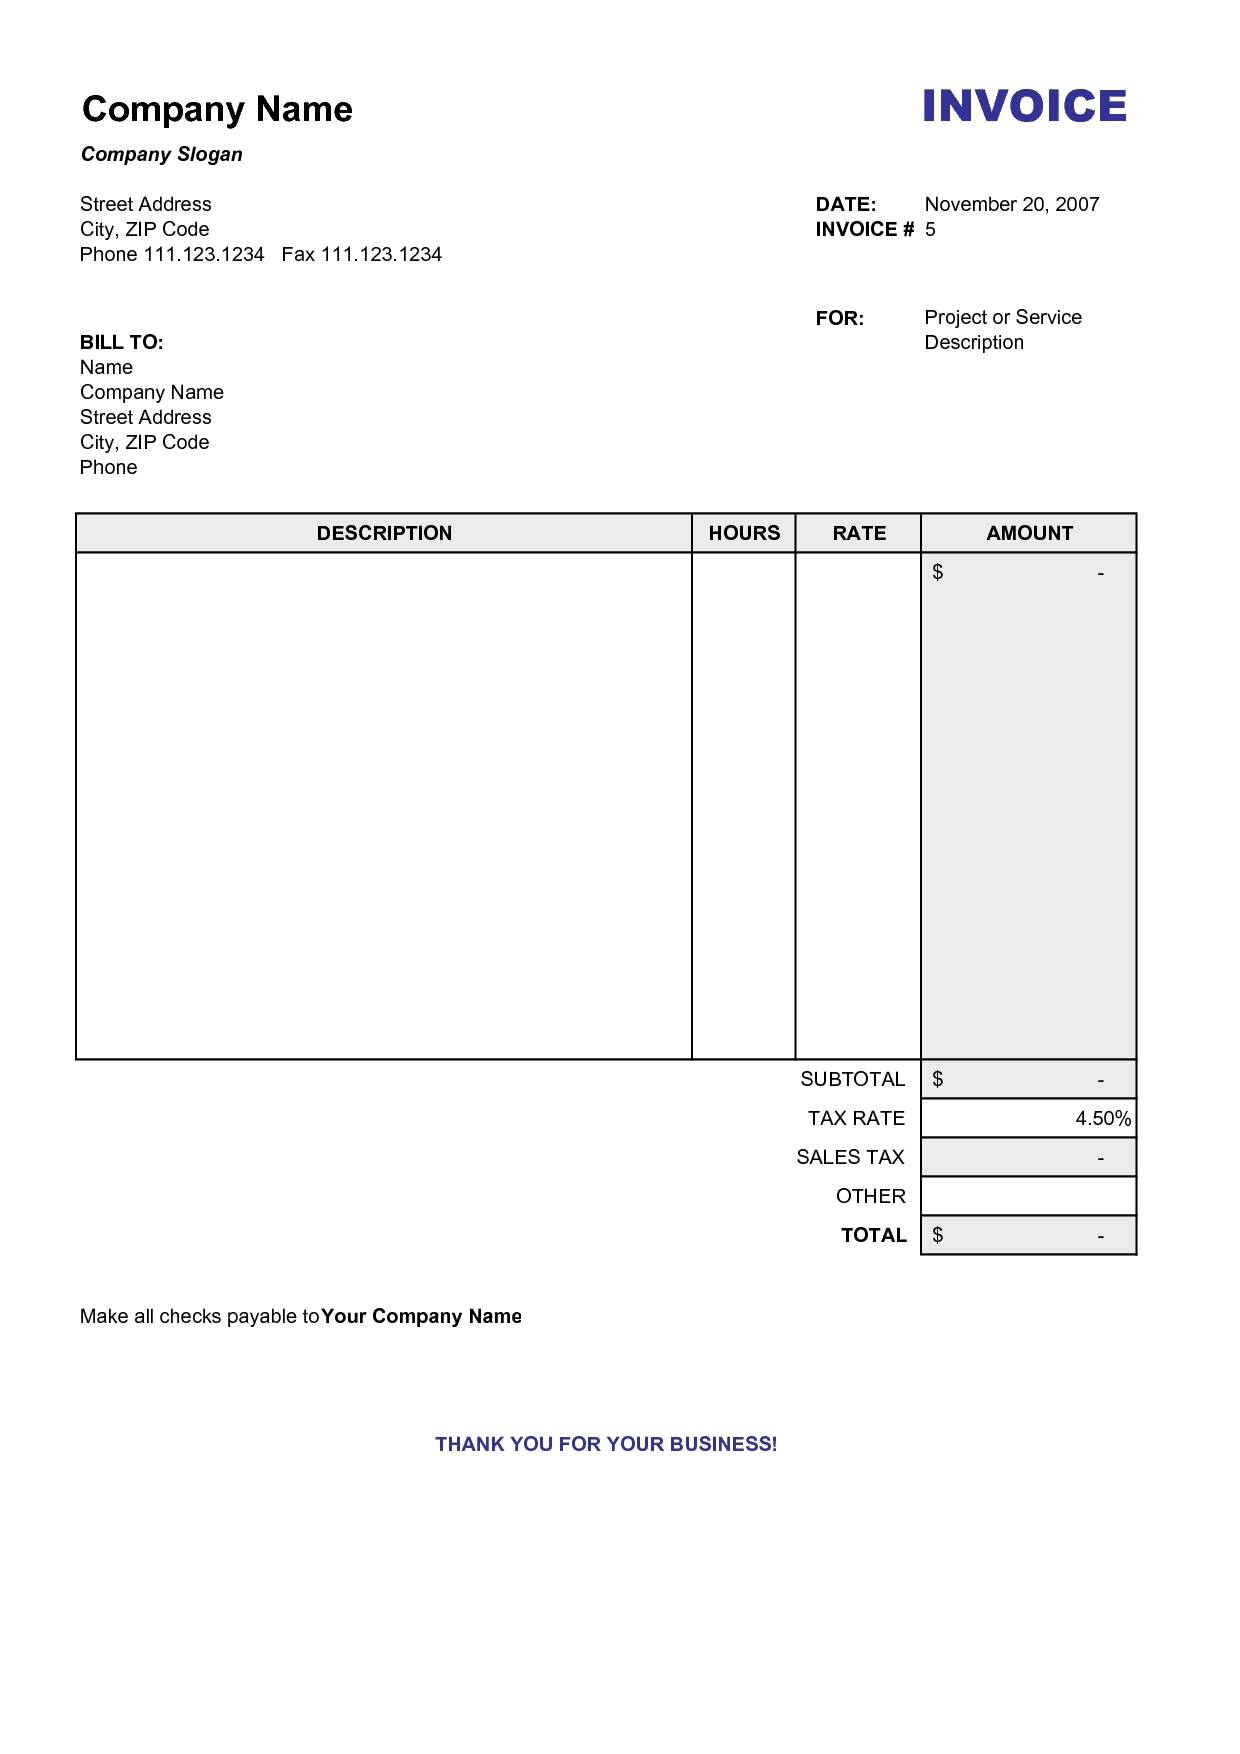 Blank Printable Invoices Invoice Template Ideas - Blank printable invoice template